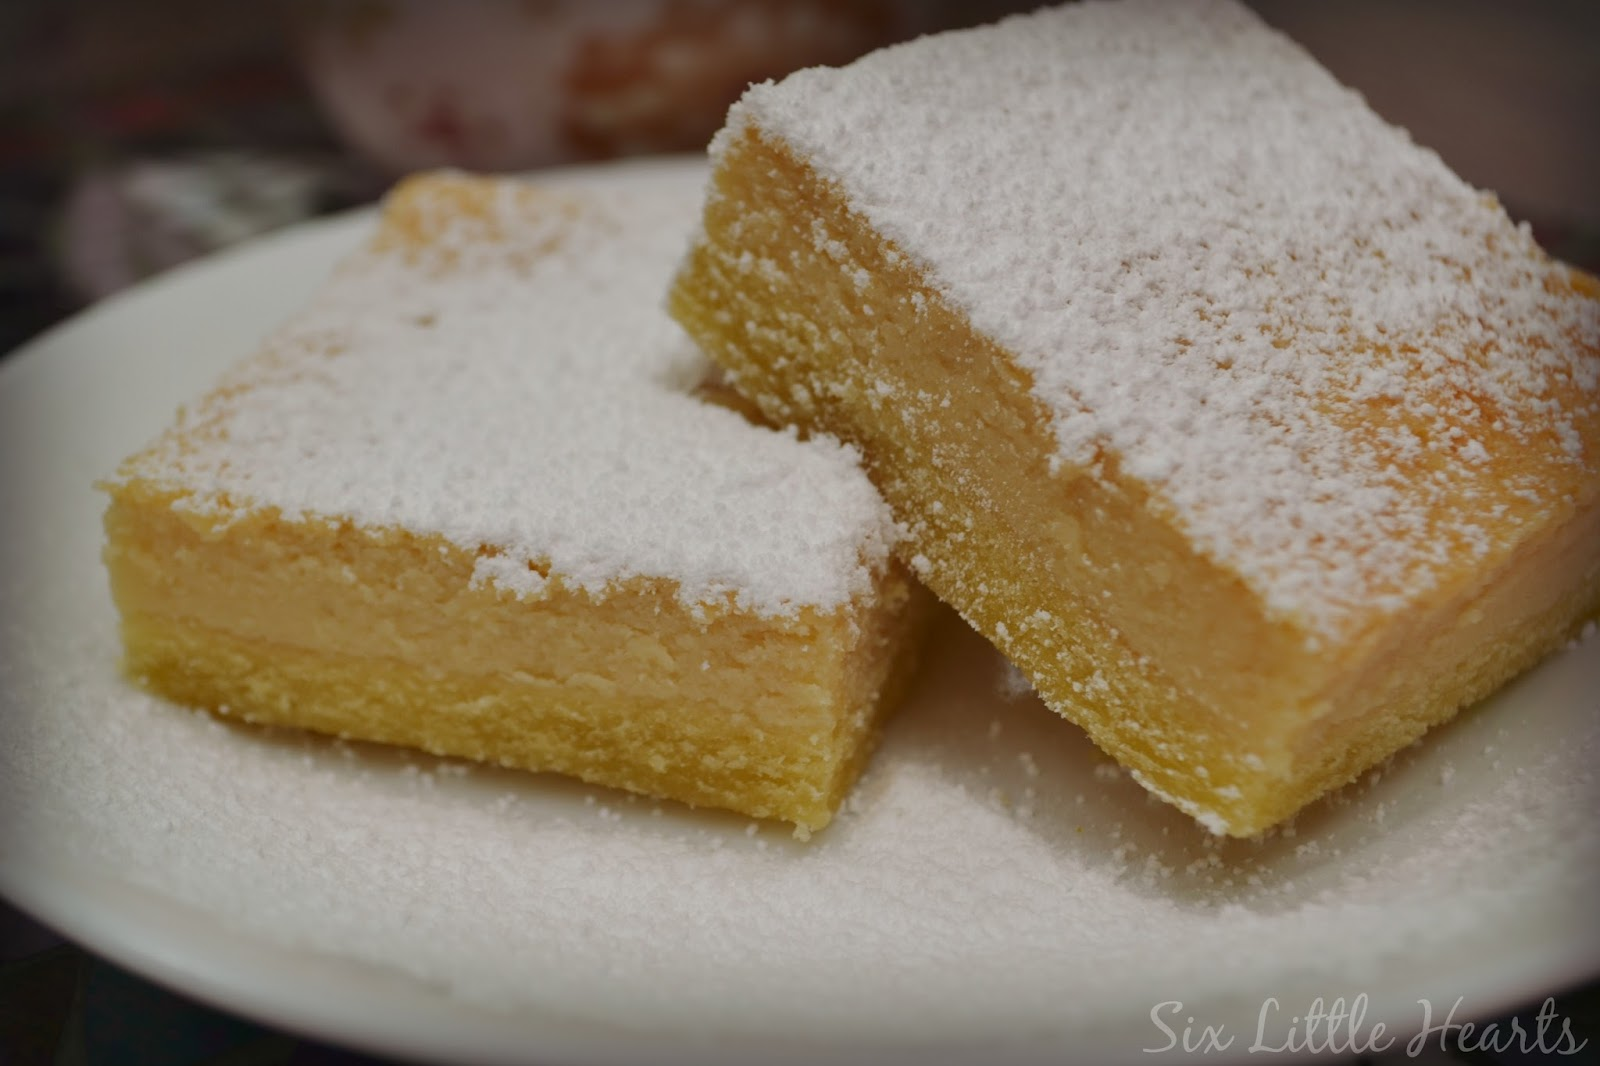 Six Little Hearts: Lemon Slice Recipe - A Simple and ...